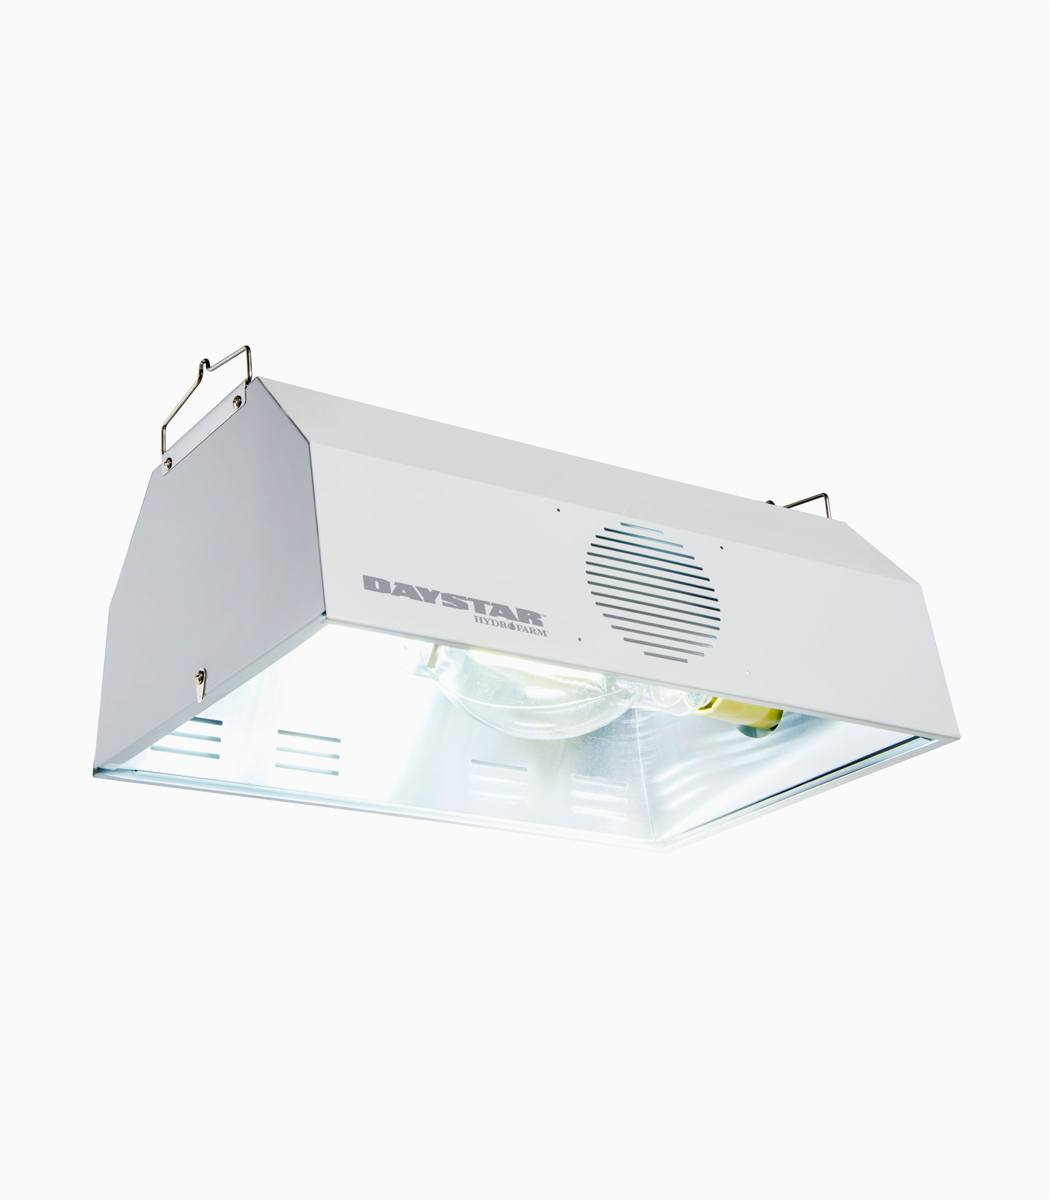 Daystar Reflector Air Coolable